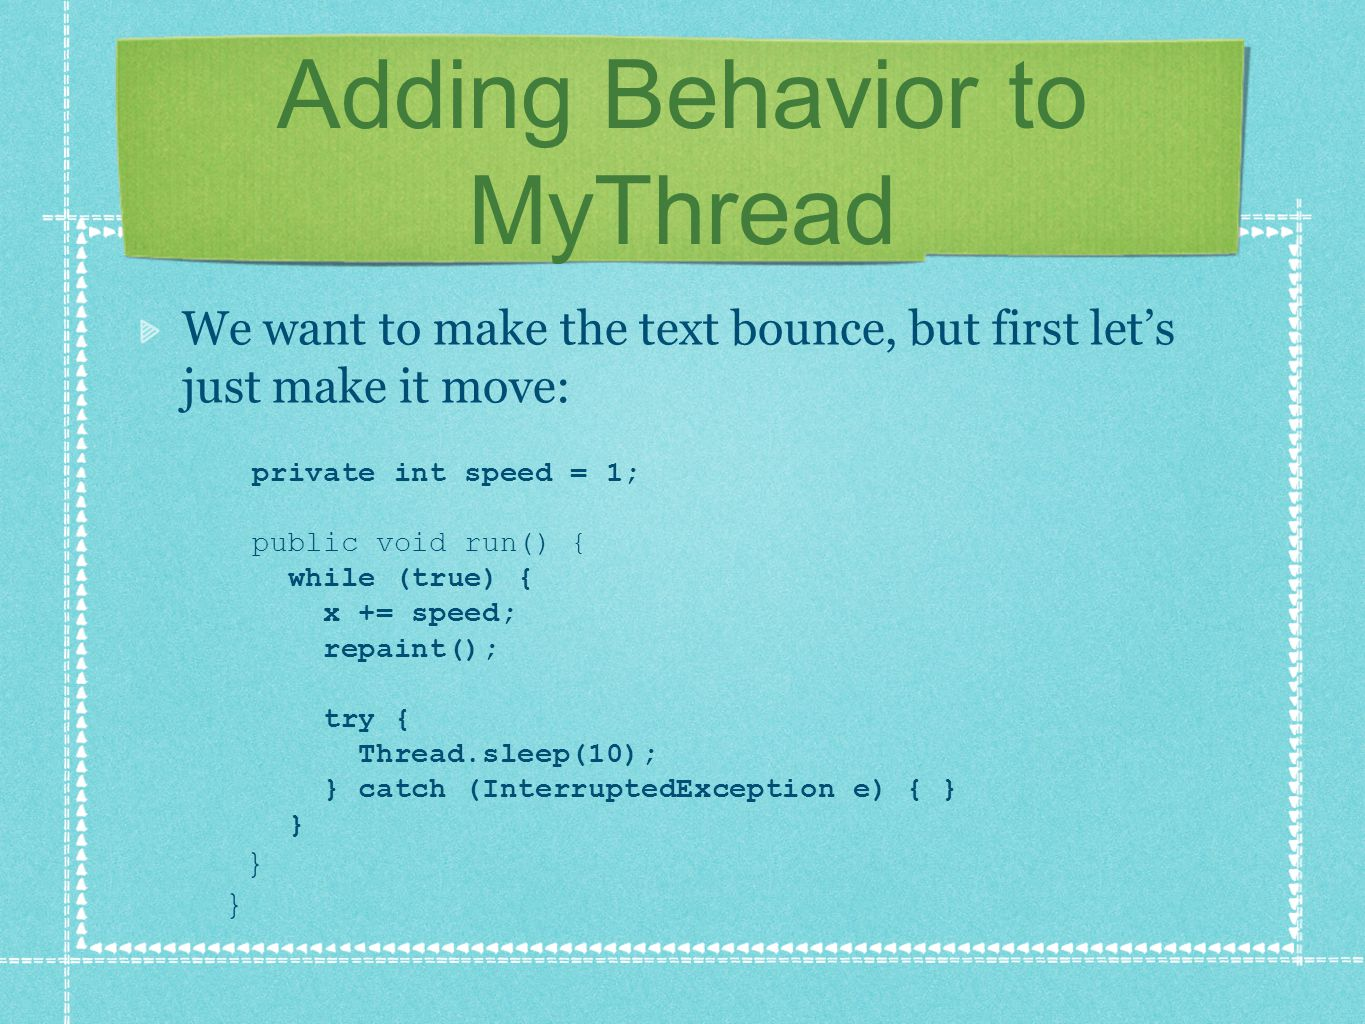 Adding Behavior to MyThread We want to make the text bounce, but first let's just make it move: private int speed = 1; public void run() { while (true) { x += speed; repaint(); try { Thread.sleep(10); } catch (InterruptedException e) { } } } }